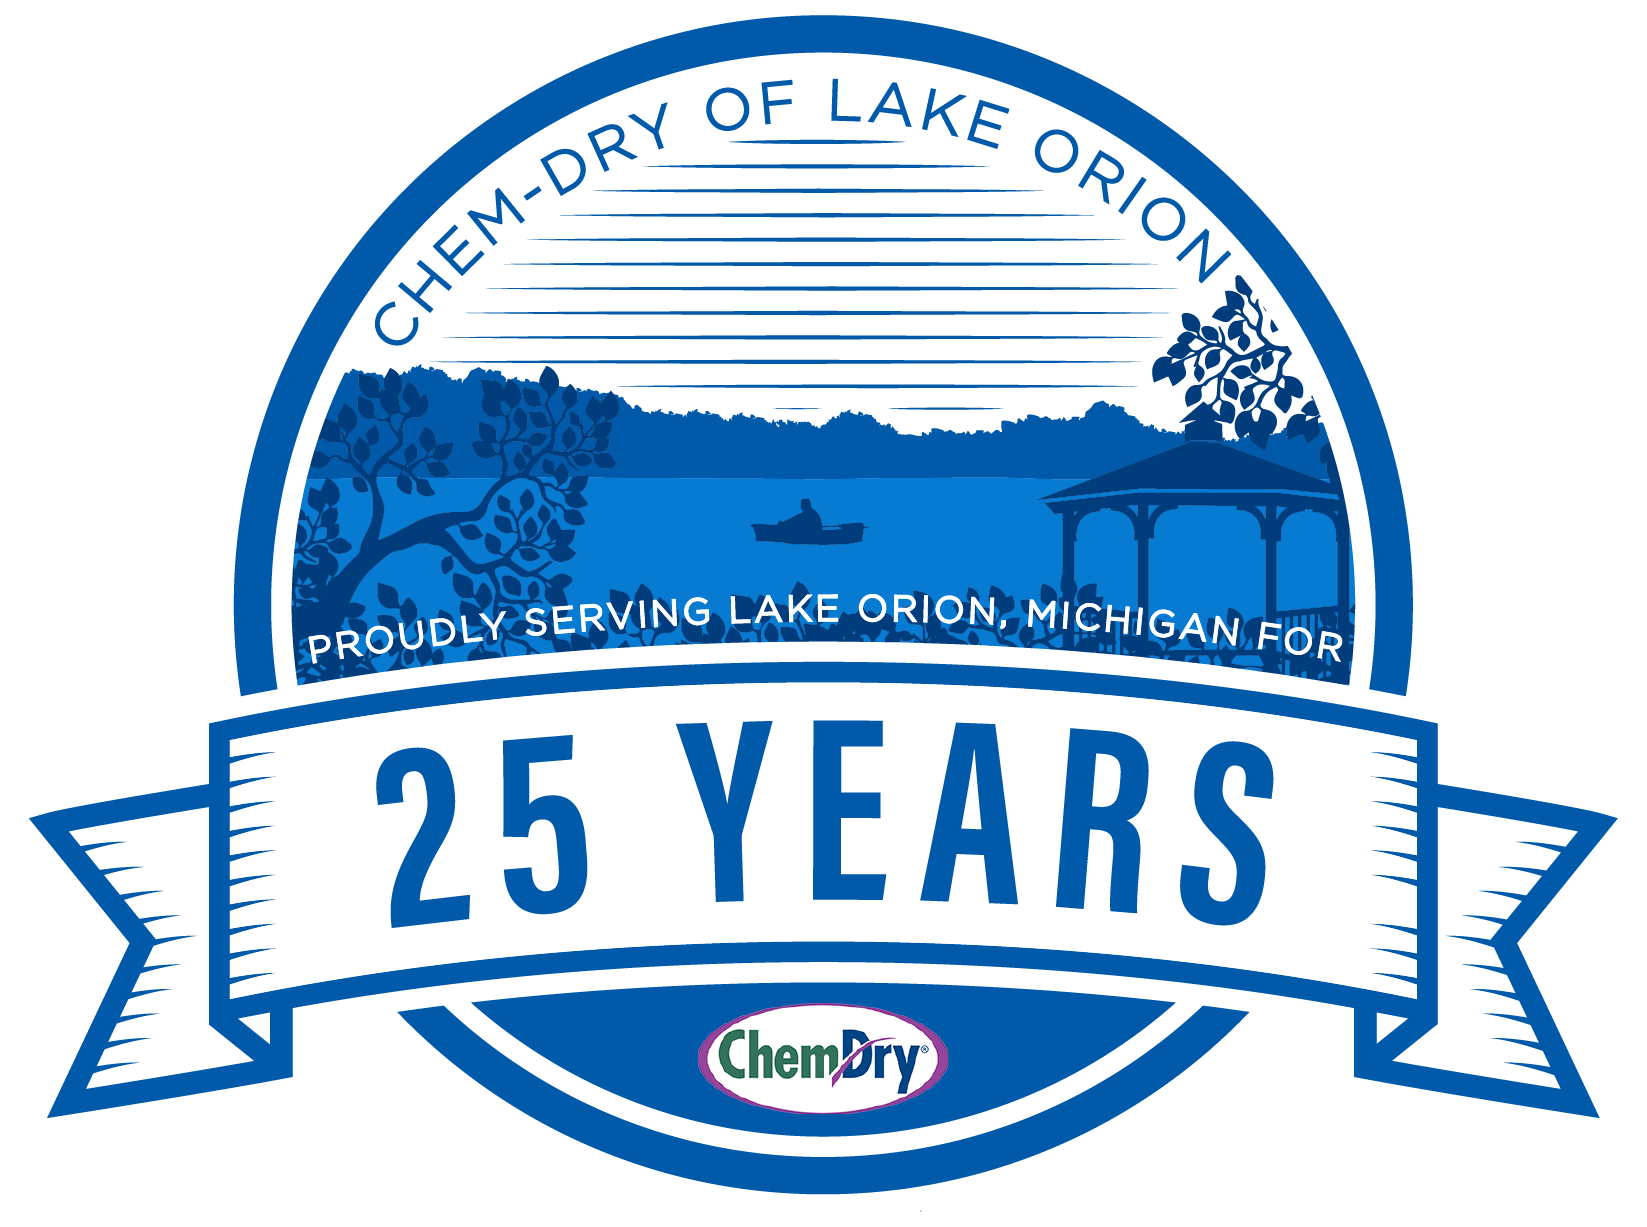 chem dry of lake orion has been serving Michigan for 25 years